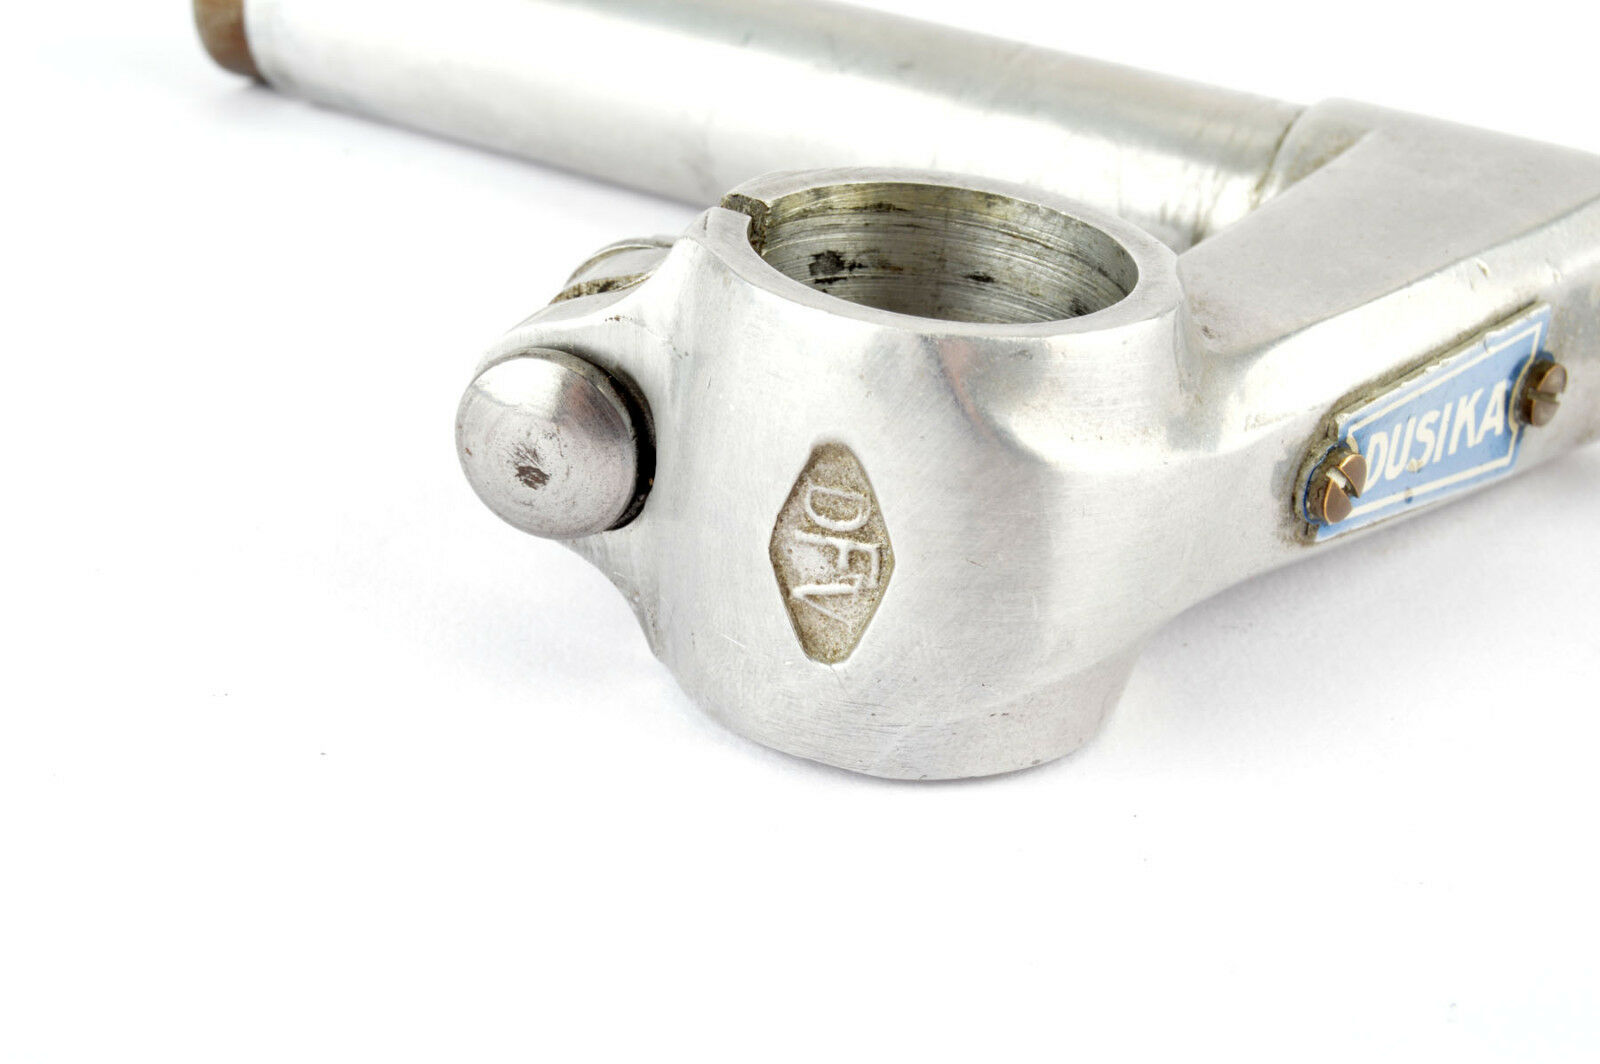 DFV Dusika Stem in Größe 70mm 70mm 70mm with 25.0mm bar clamp Größe from the 1960s  | Genial